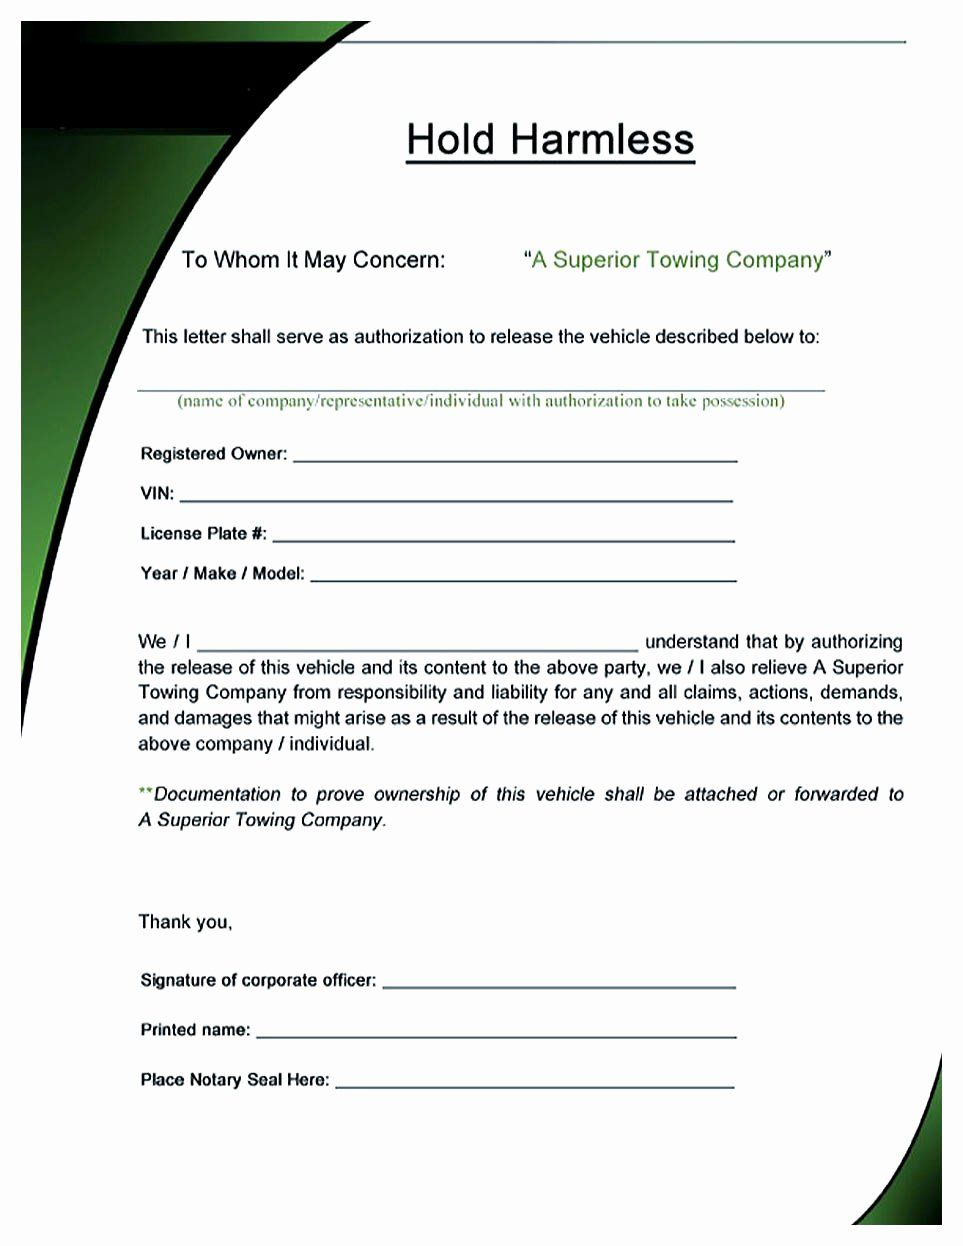 Hold Harmless Agreement Sample Wording Best Of Making Hold Harmless Agreement Template For Different Purposes Letter Templates Hold On Business Letter Sample